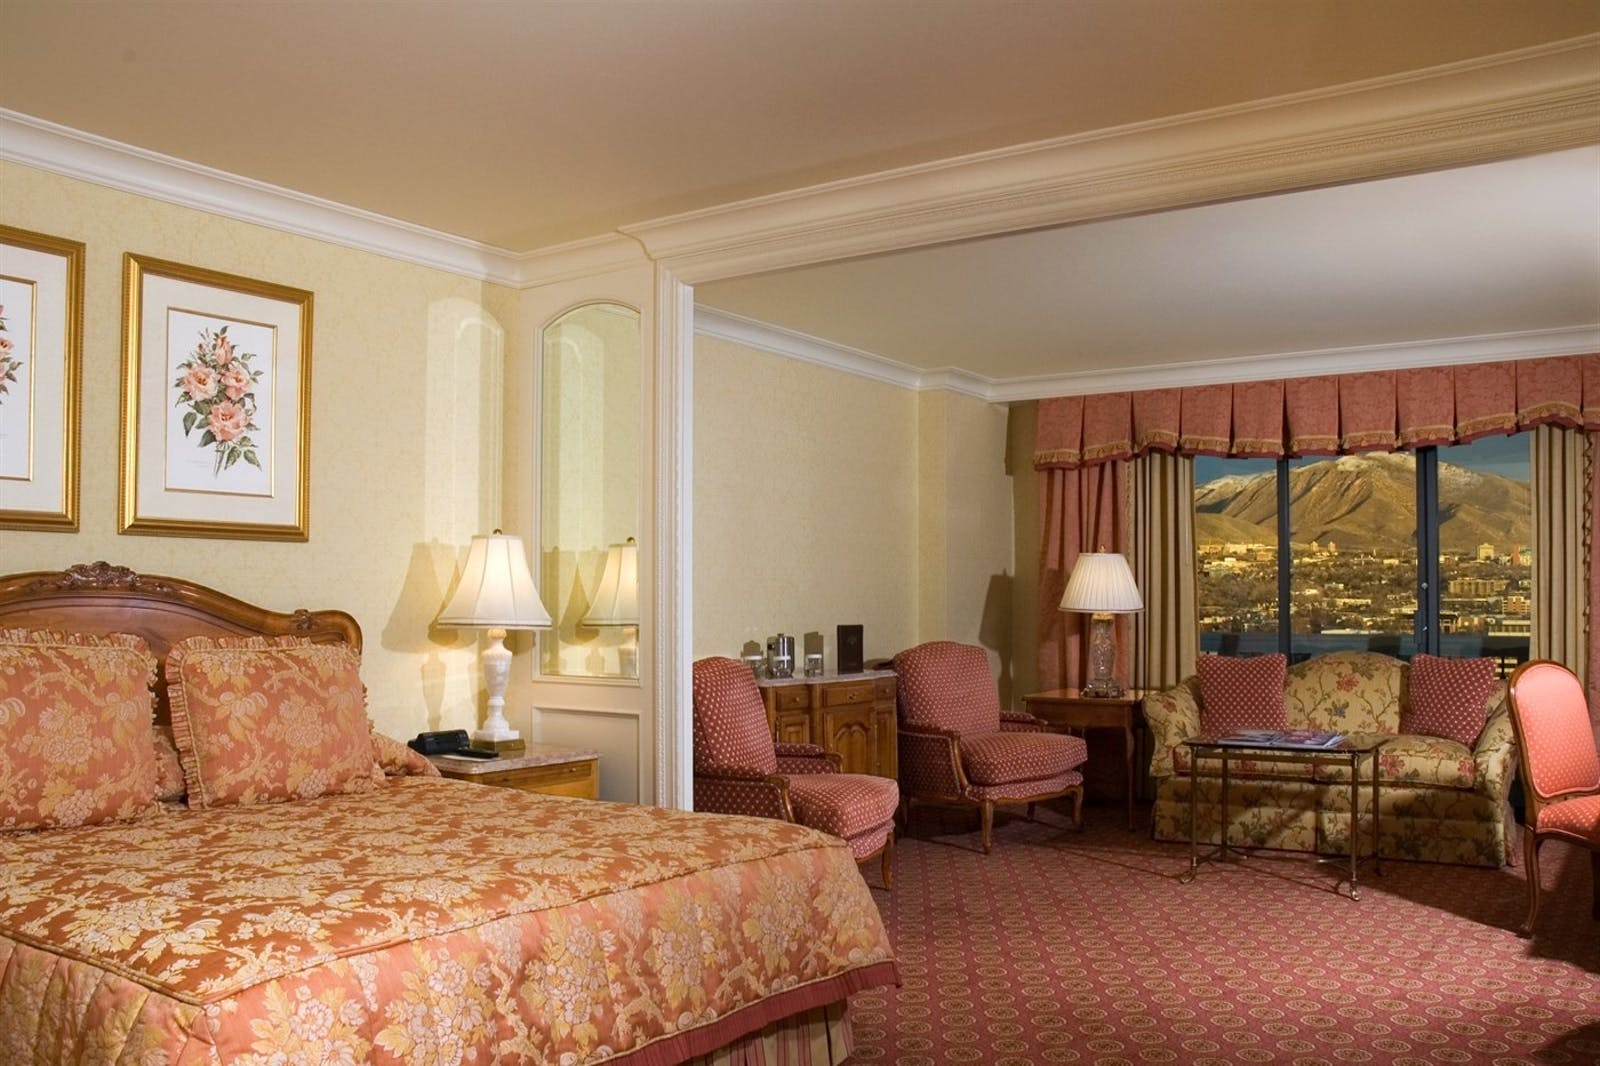 Room at Grand America Hotel, Salt Lake City